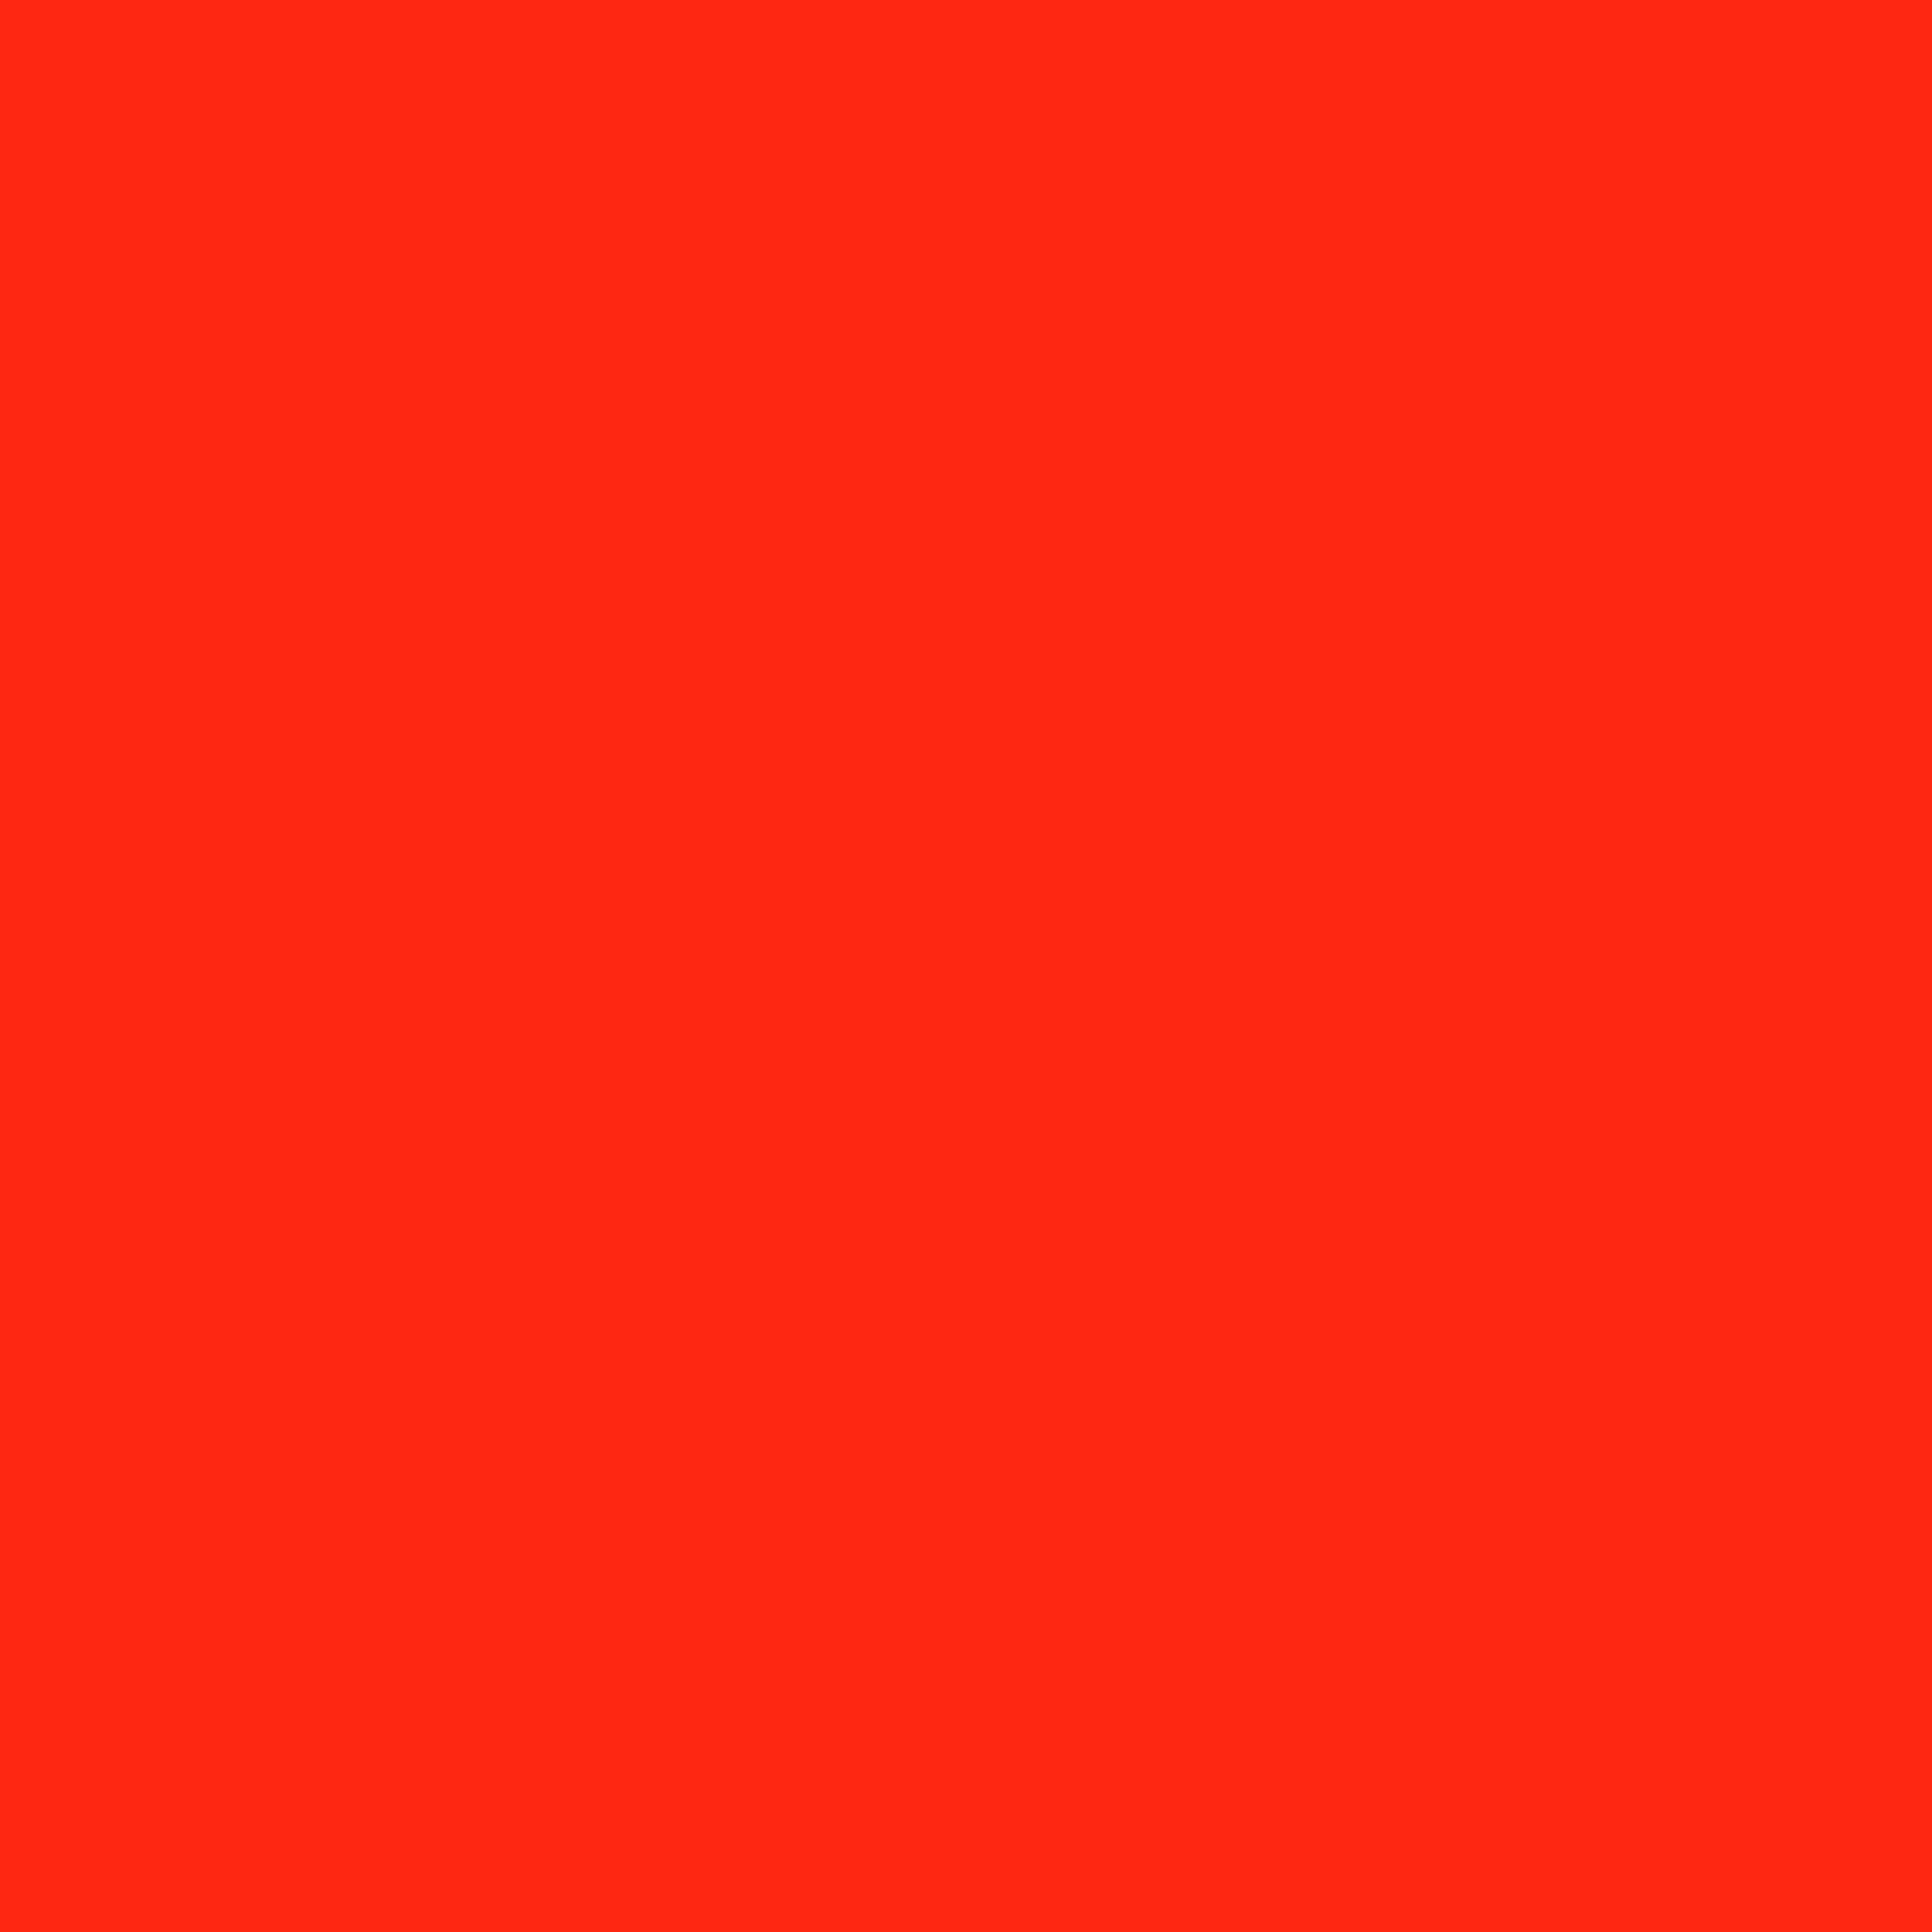 2732x2732 Red RYB Solid Color Background